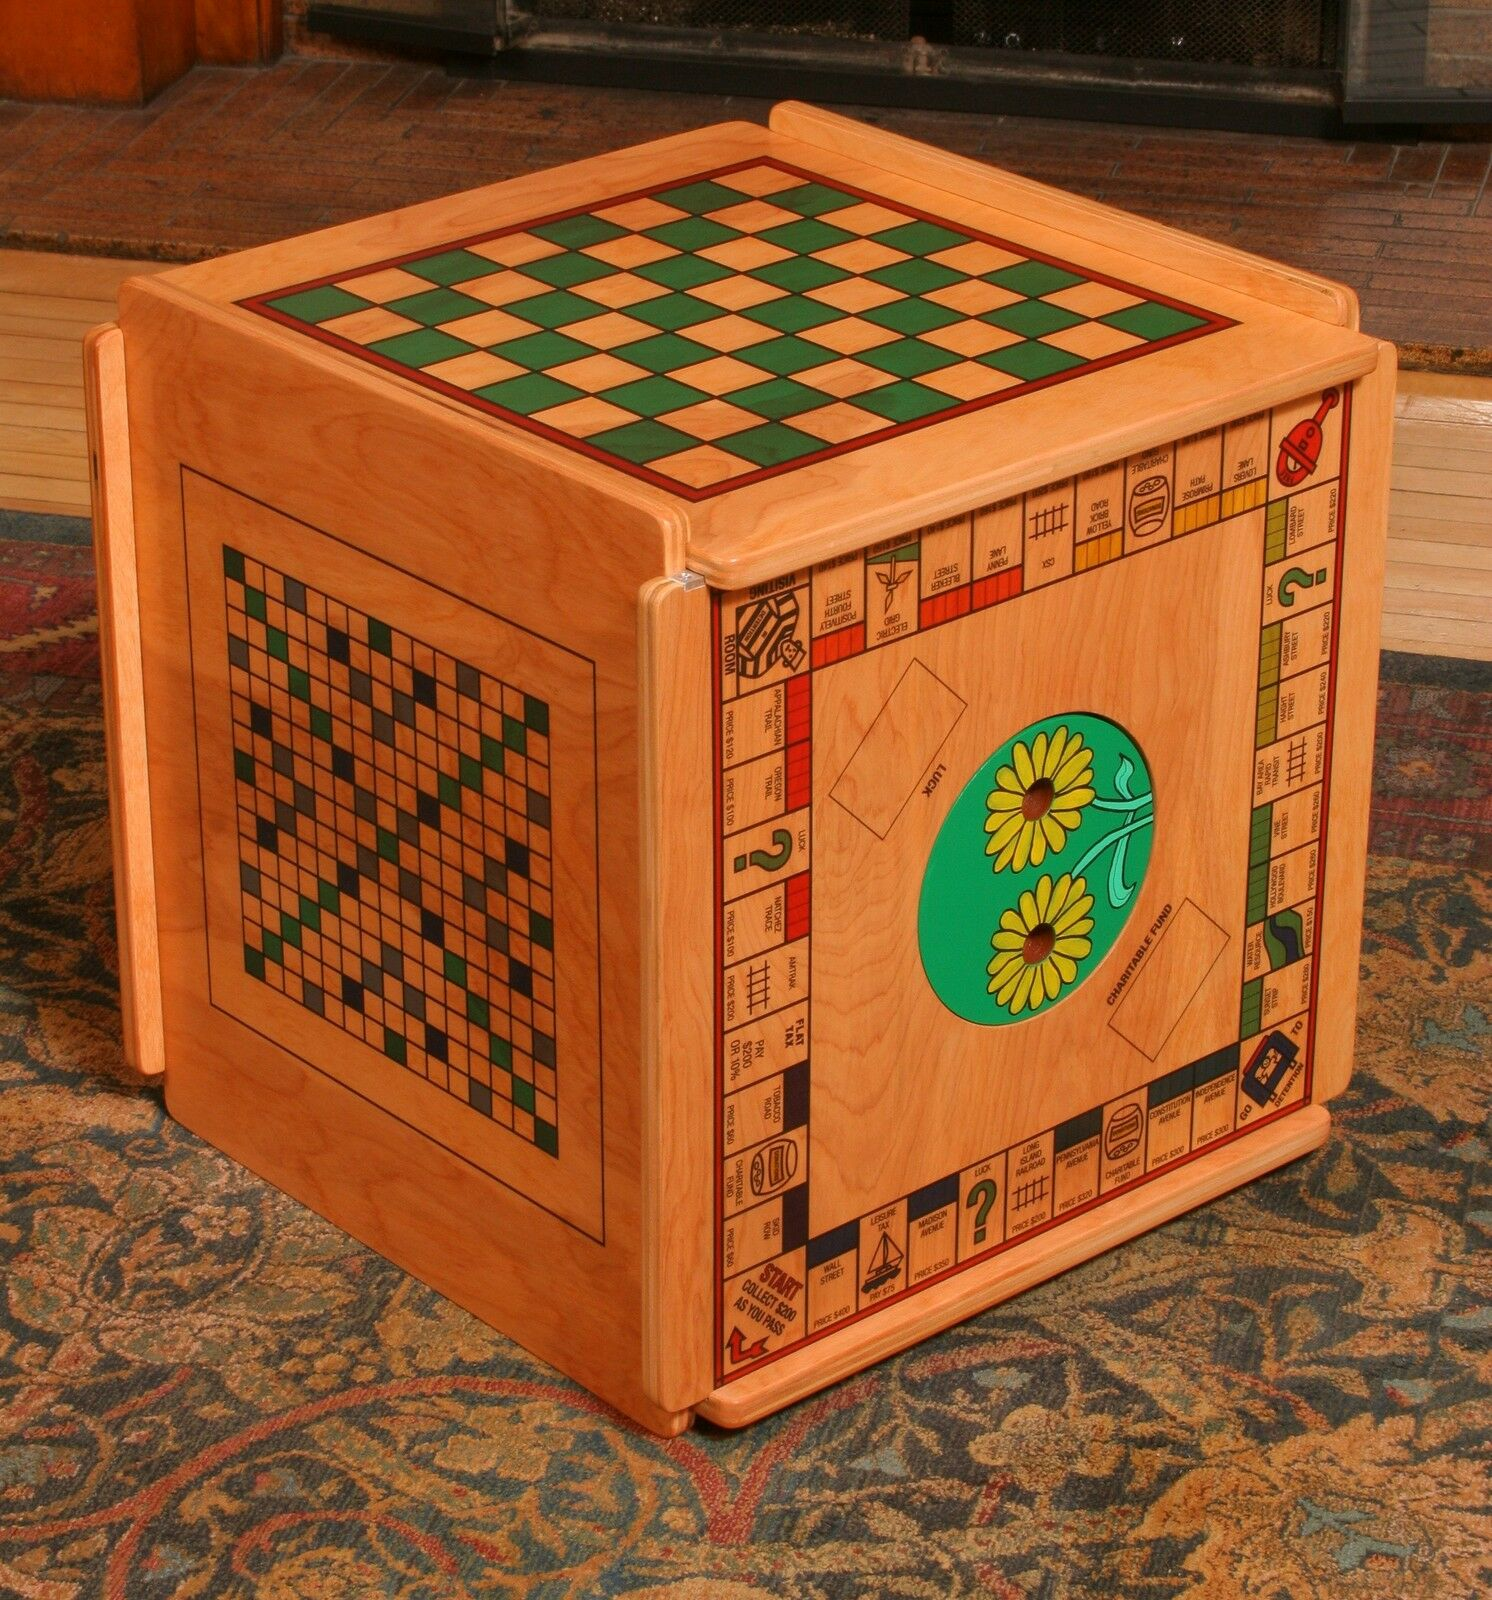 The American Game Table Company